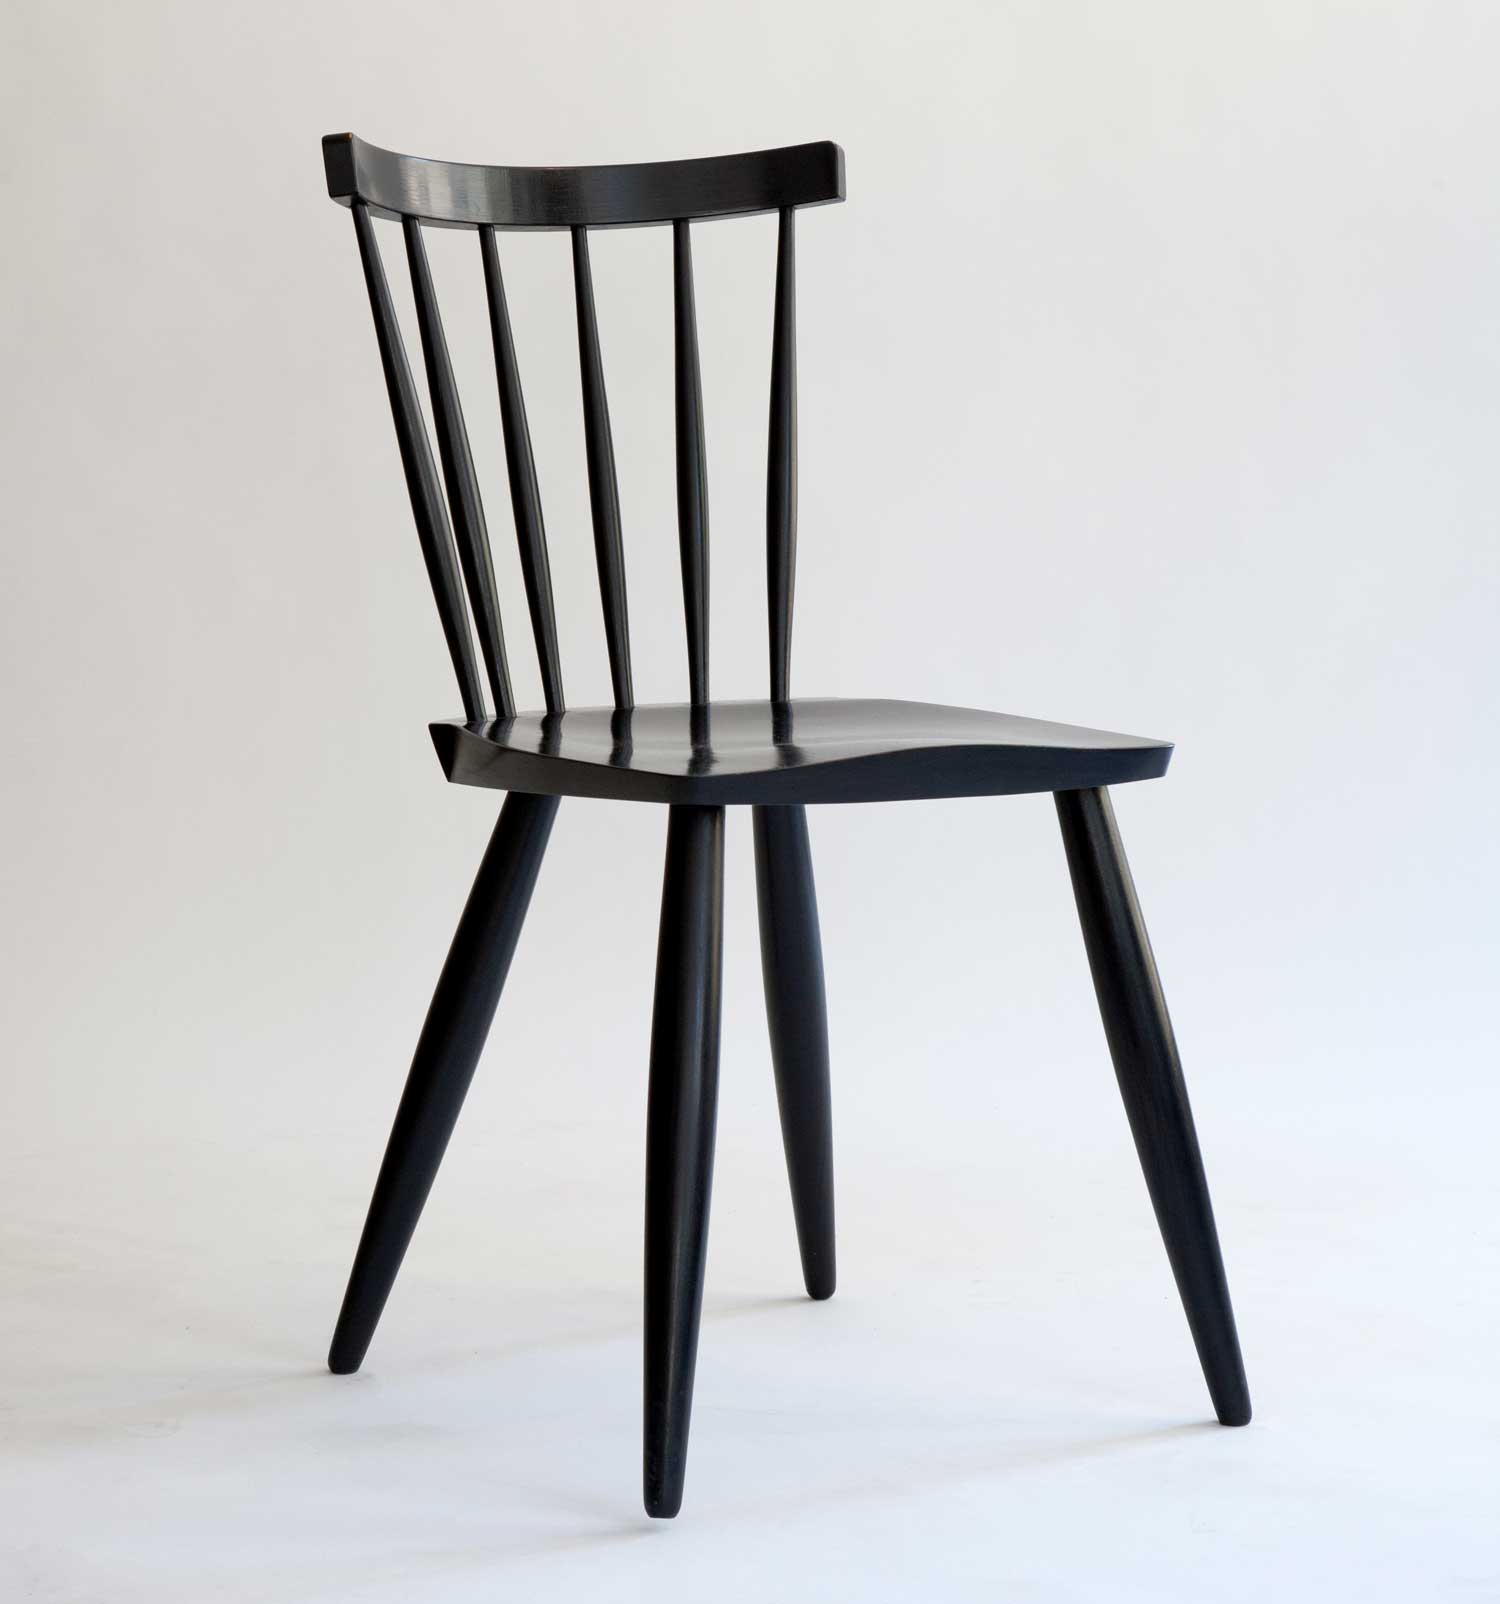 metal-and-wood-seating-chair-maine-windsor.jpg